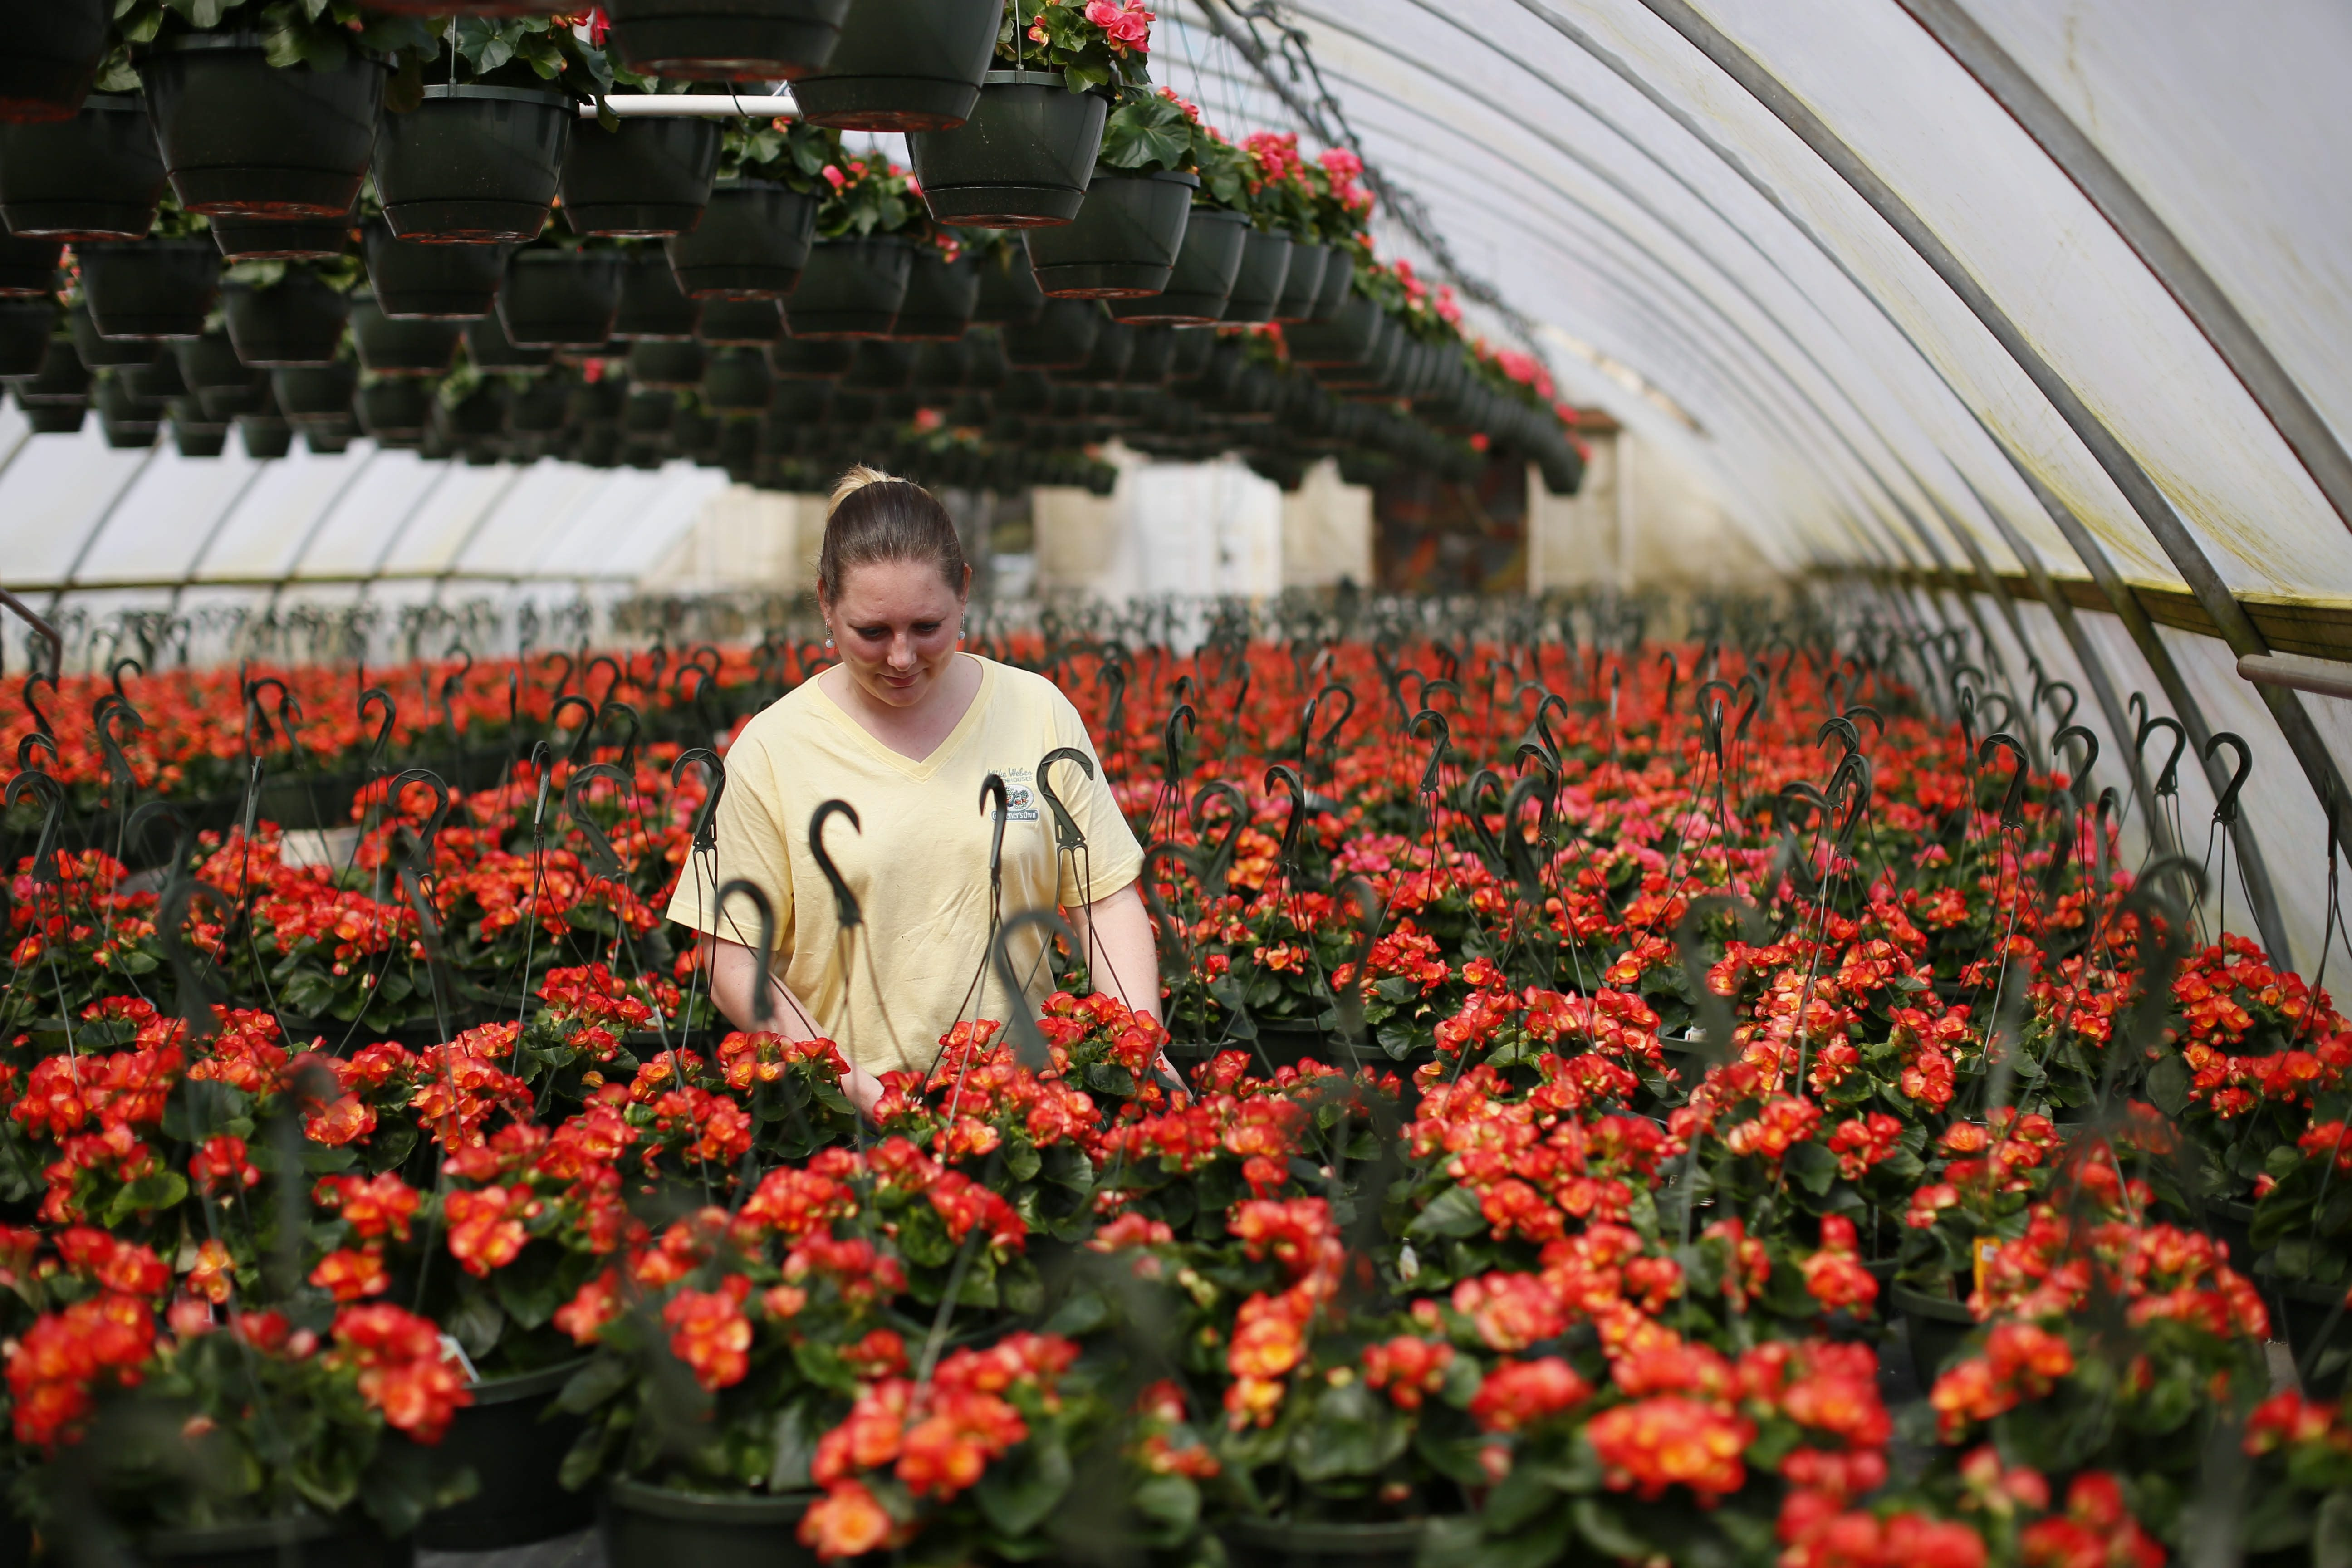 Jenn Weber,  manager of Mike Weber Greenhouses in the Gardenville neighborhood of West Seneca, was getting begonias ready in preparation for the opening of the store. (Derek Gee/Buffalo News)